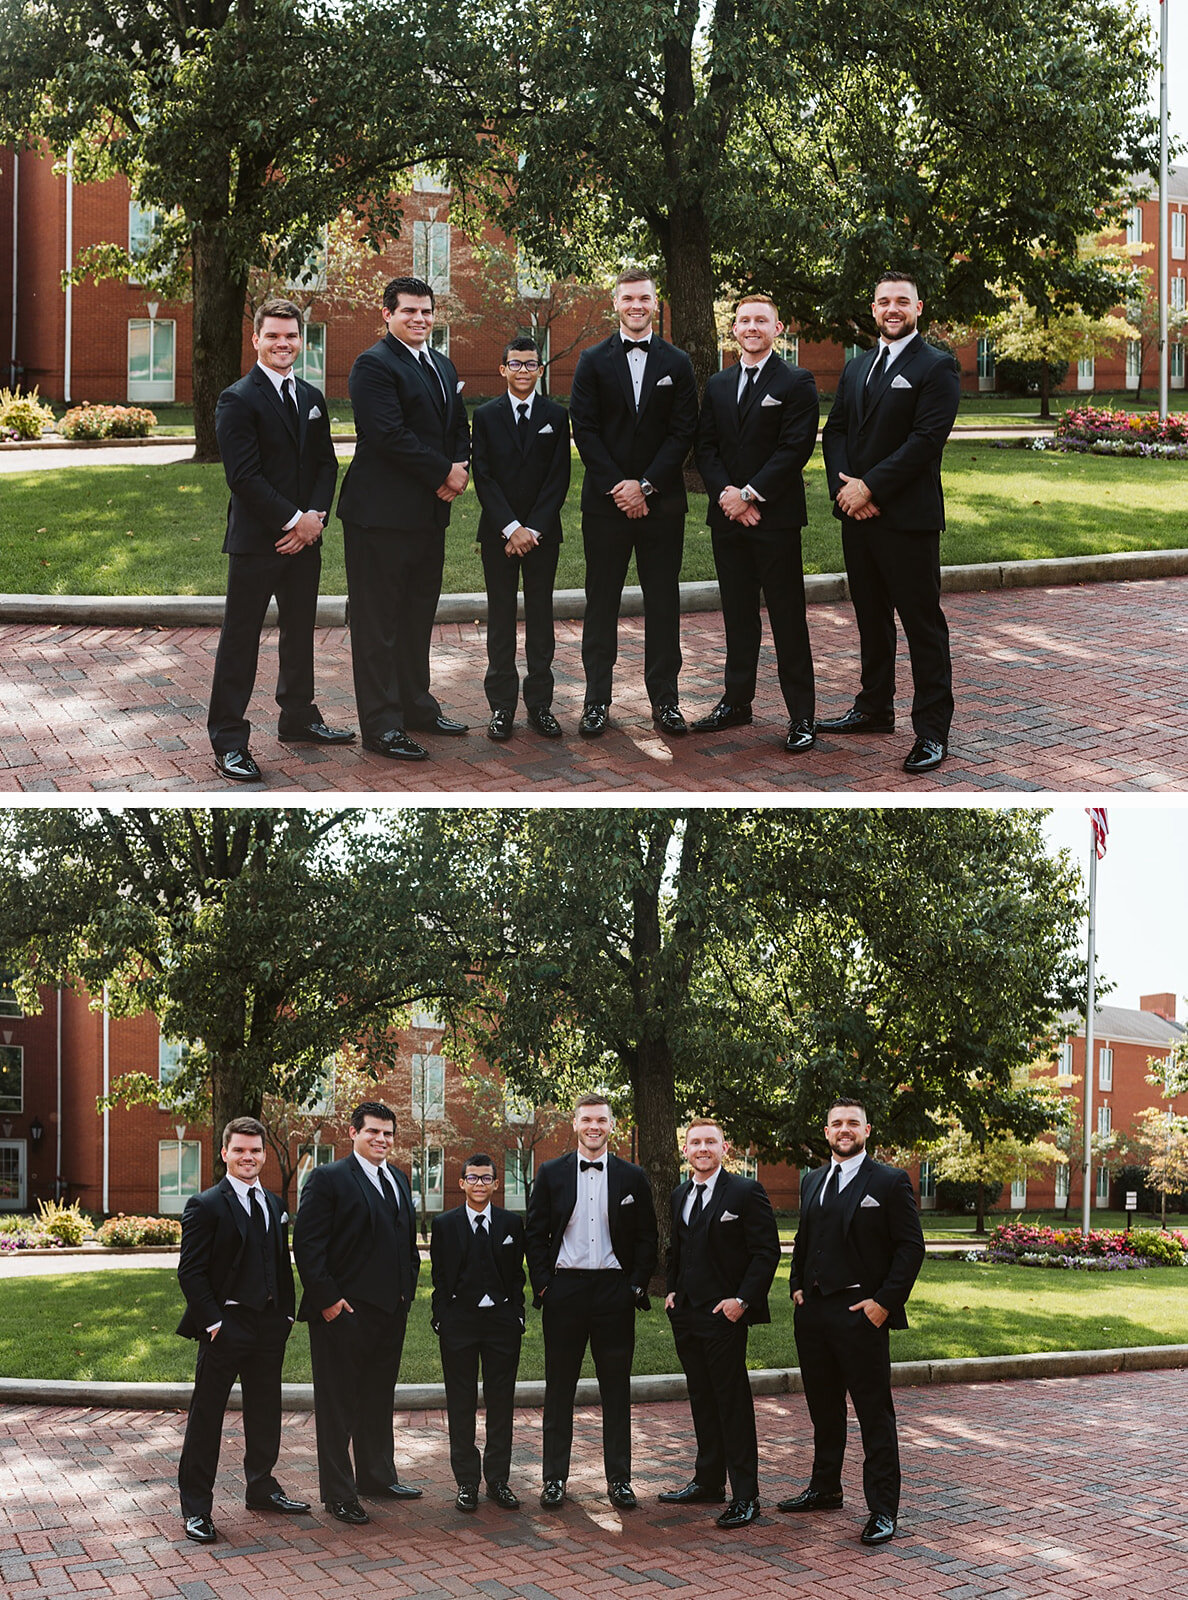 groom and groomsmen for wedding day formals